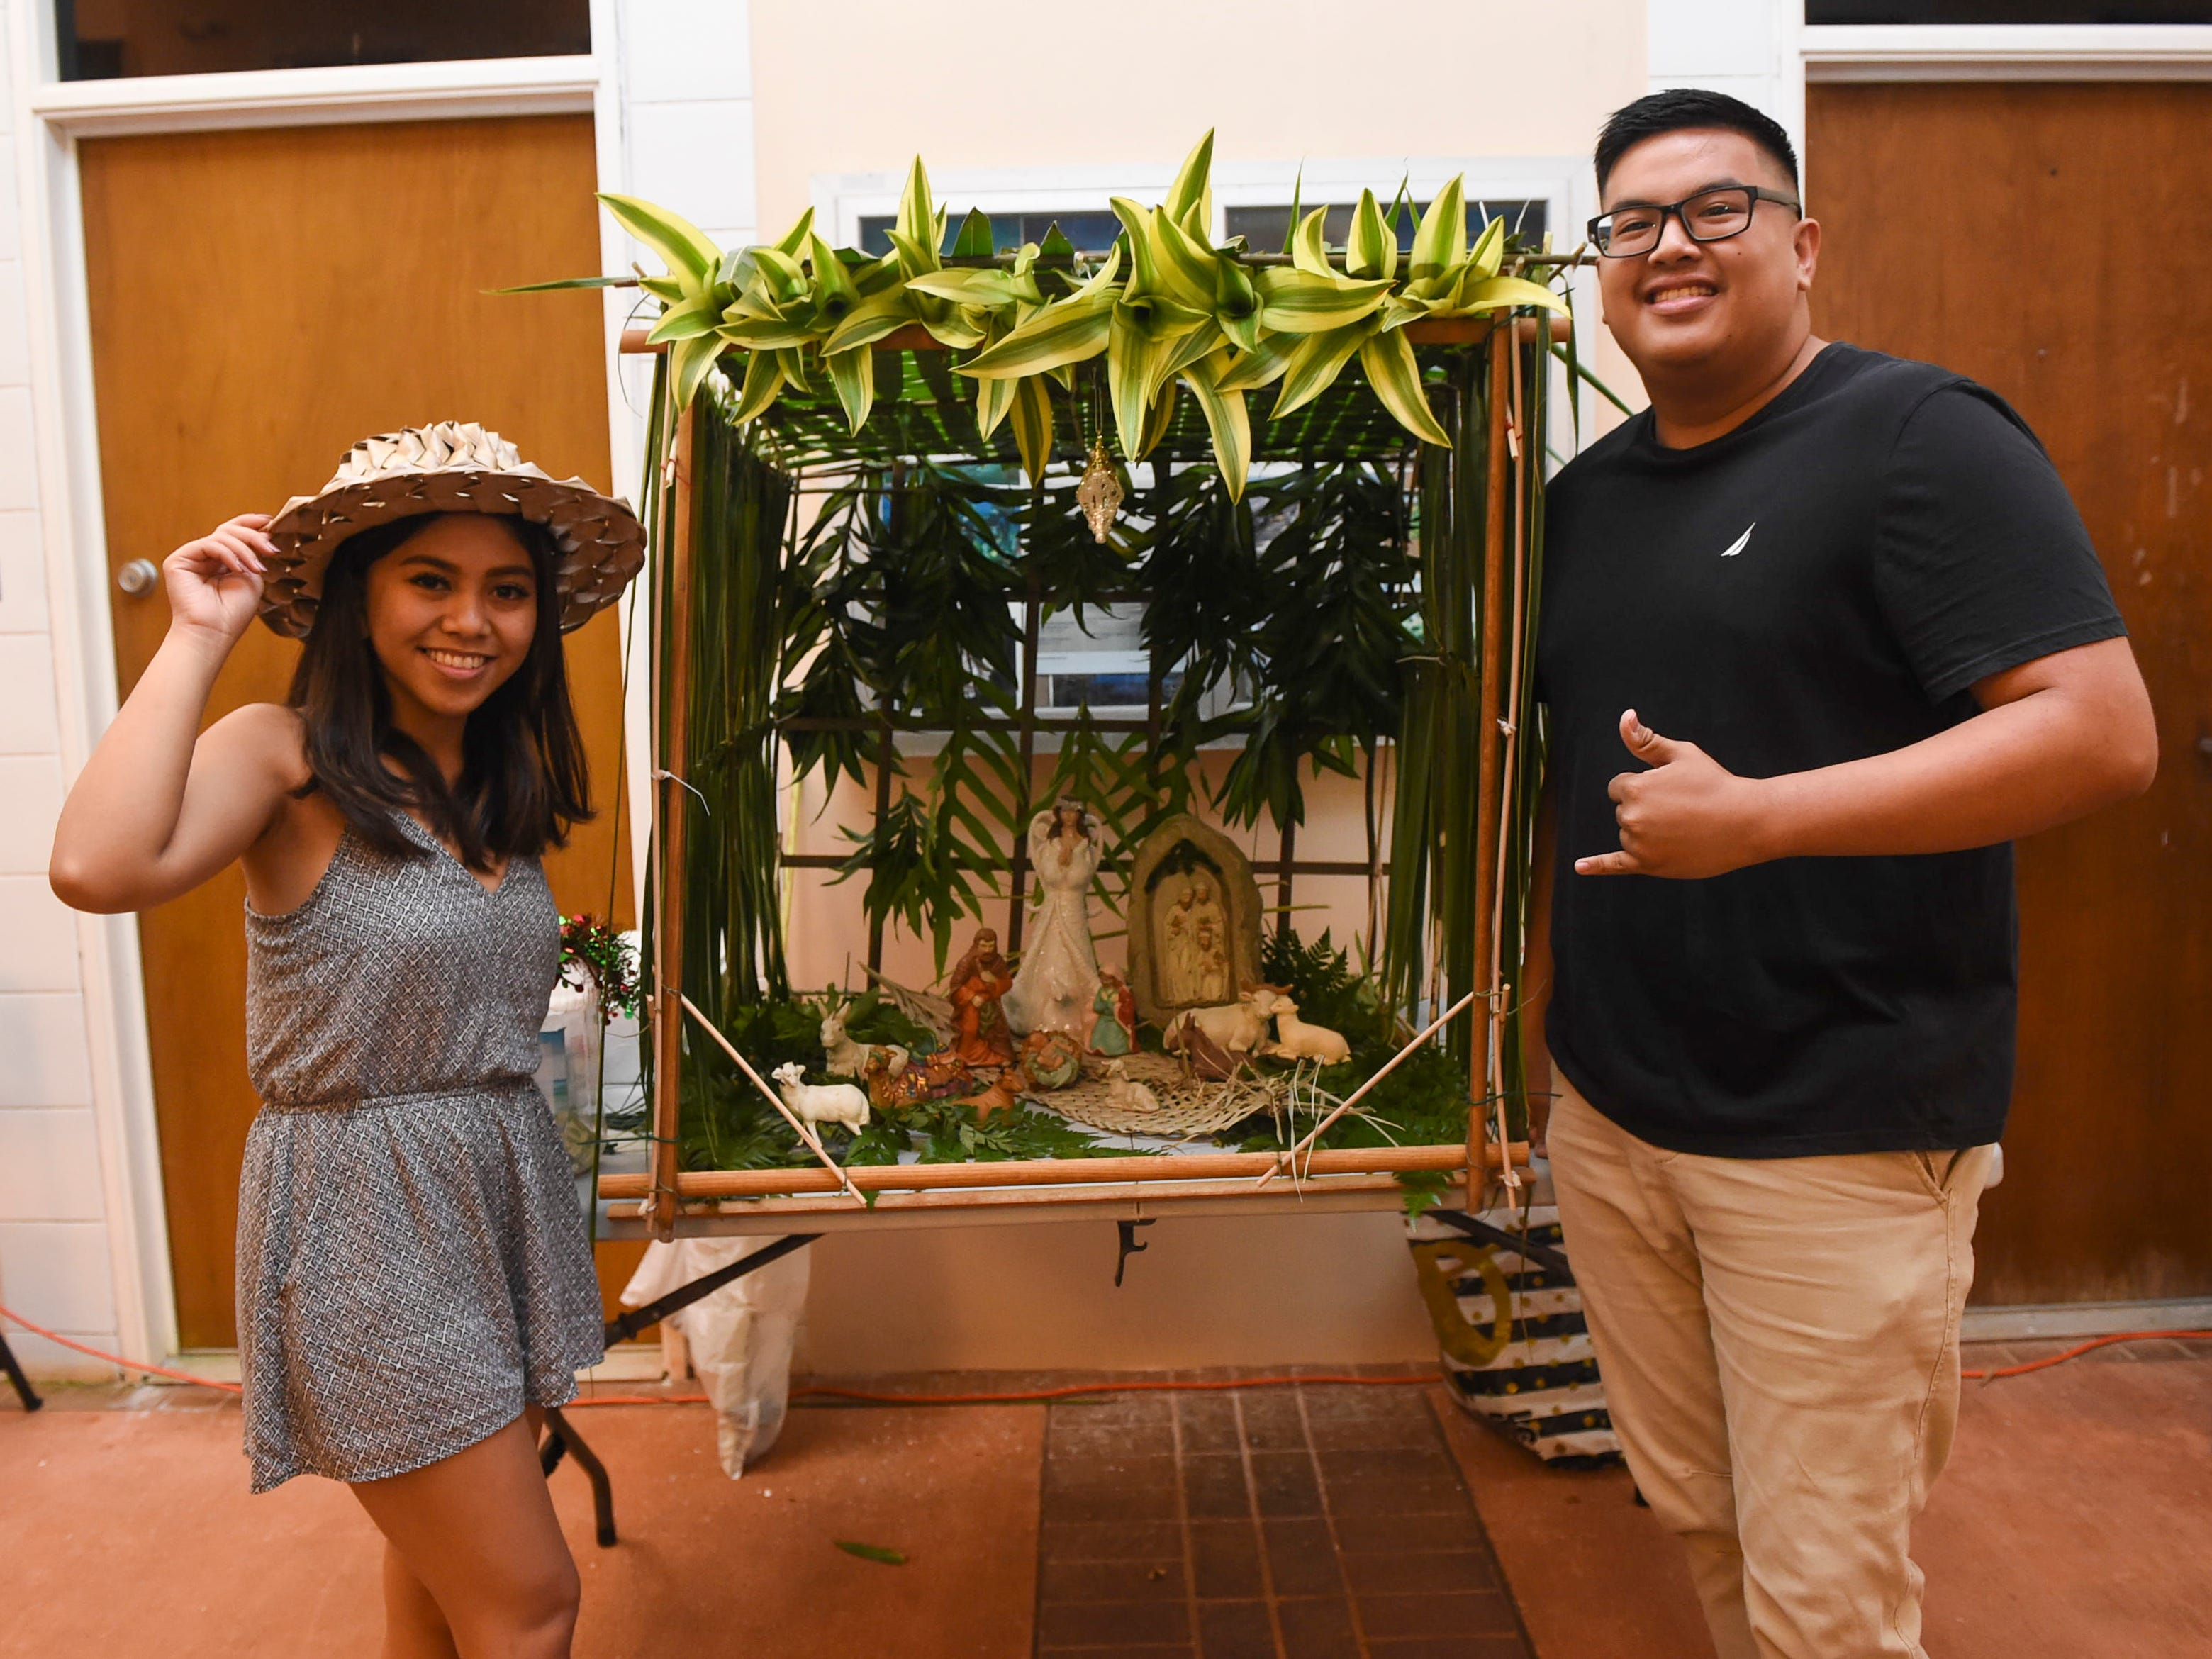 CHamoru language class students Jeanny Newby and Patrick ZGalimba with their bilen during the University of Guam Chamorro Studies Program's 2018 Christmas Celebration, Puengen Minagof Noche Buena! at the UOG Humanities and Social Sciences Building on Nov. 30, 2018.